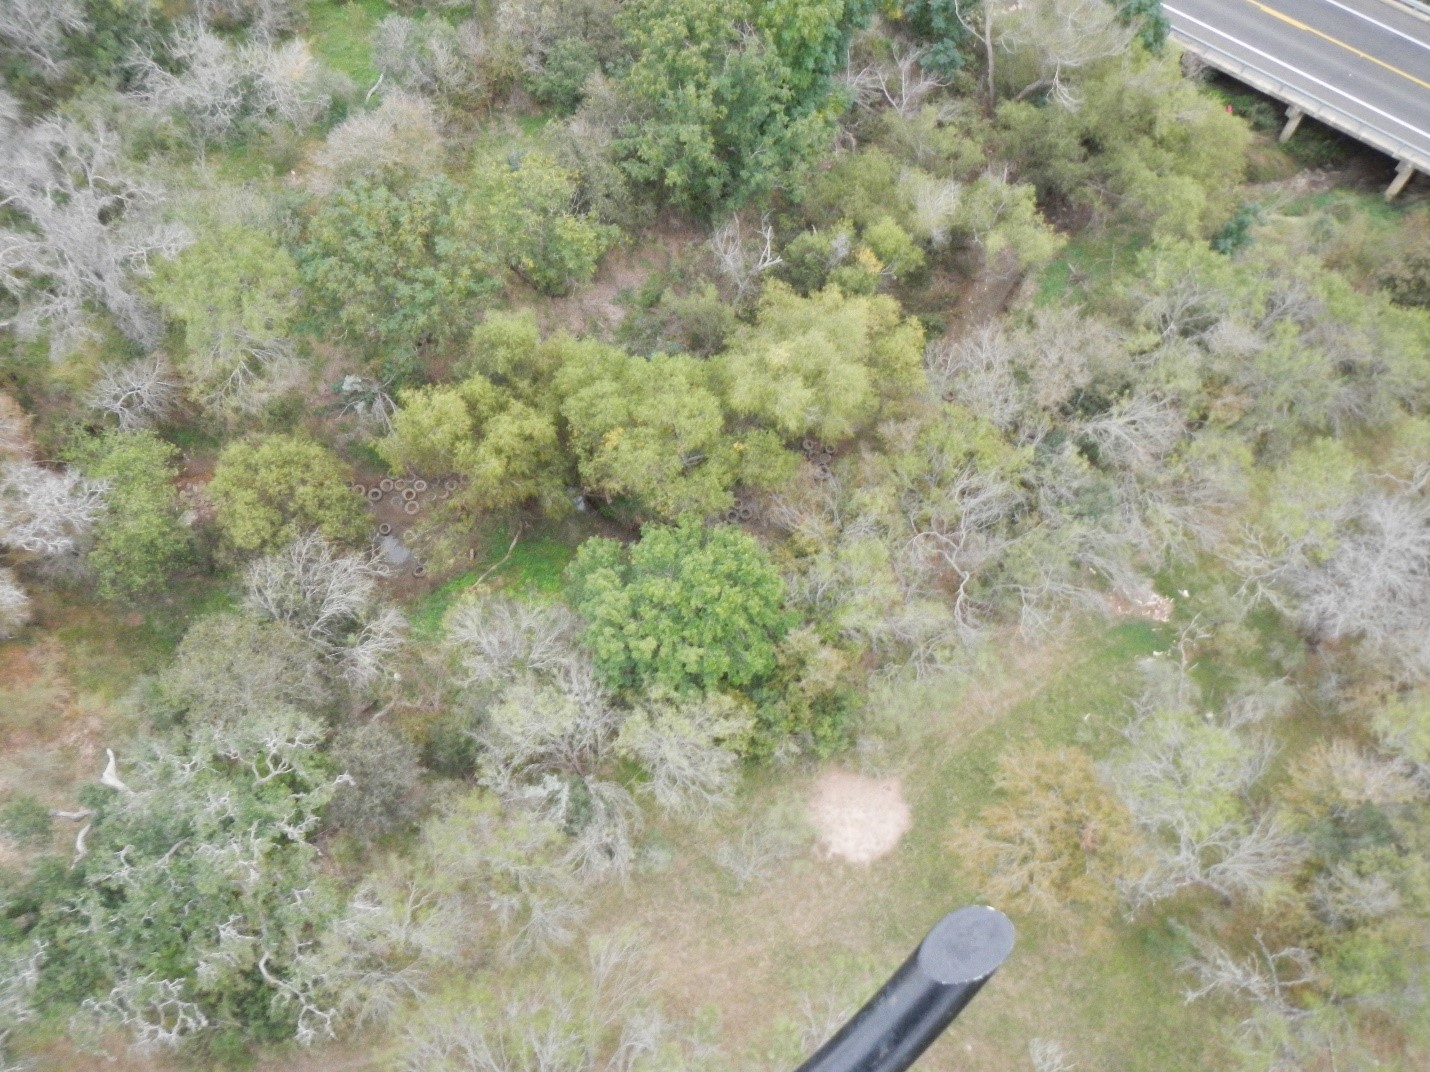 River Authority's Environmental Investigations team conducting an aerial exercise to detect illegal dumping sites along the San Antonio River Basin